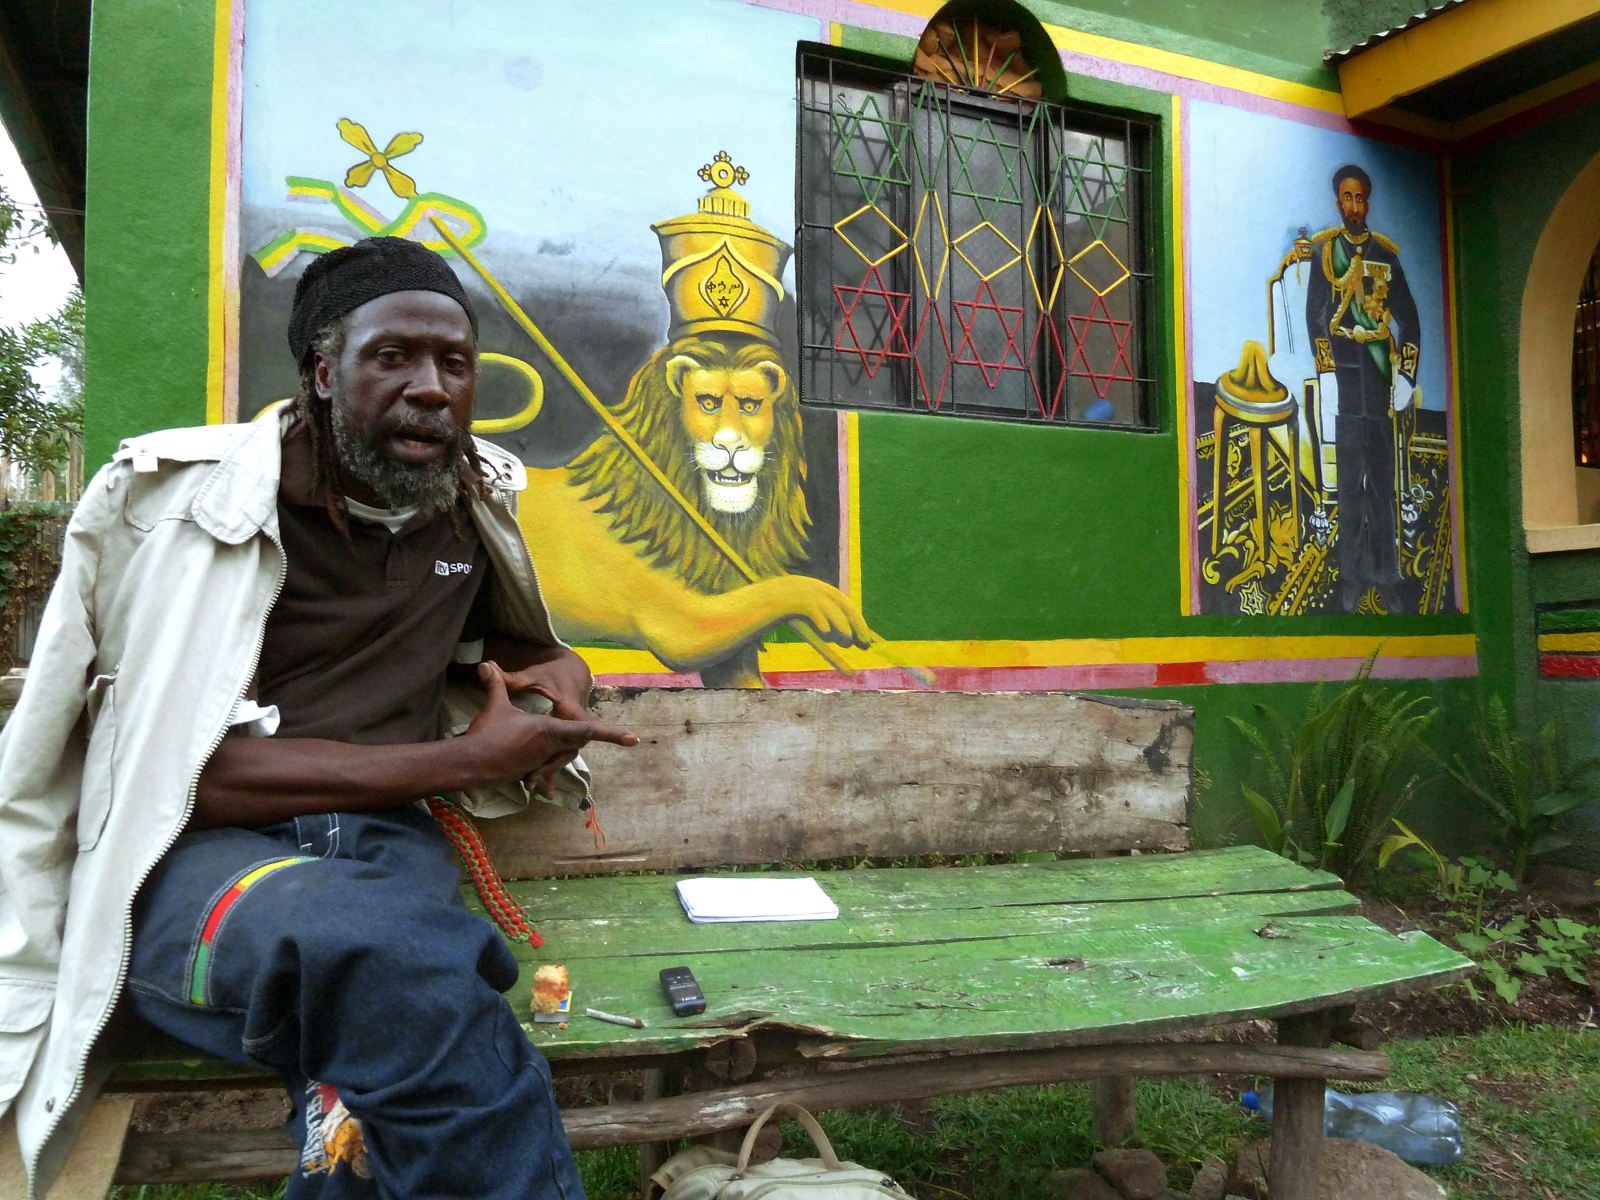 Rastafarians in Jamaica such as rasta priest Ras Moya will soon be smoke cannabis legally